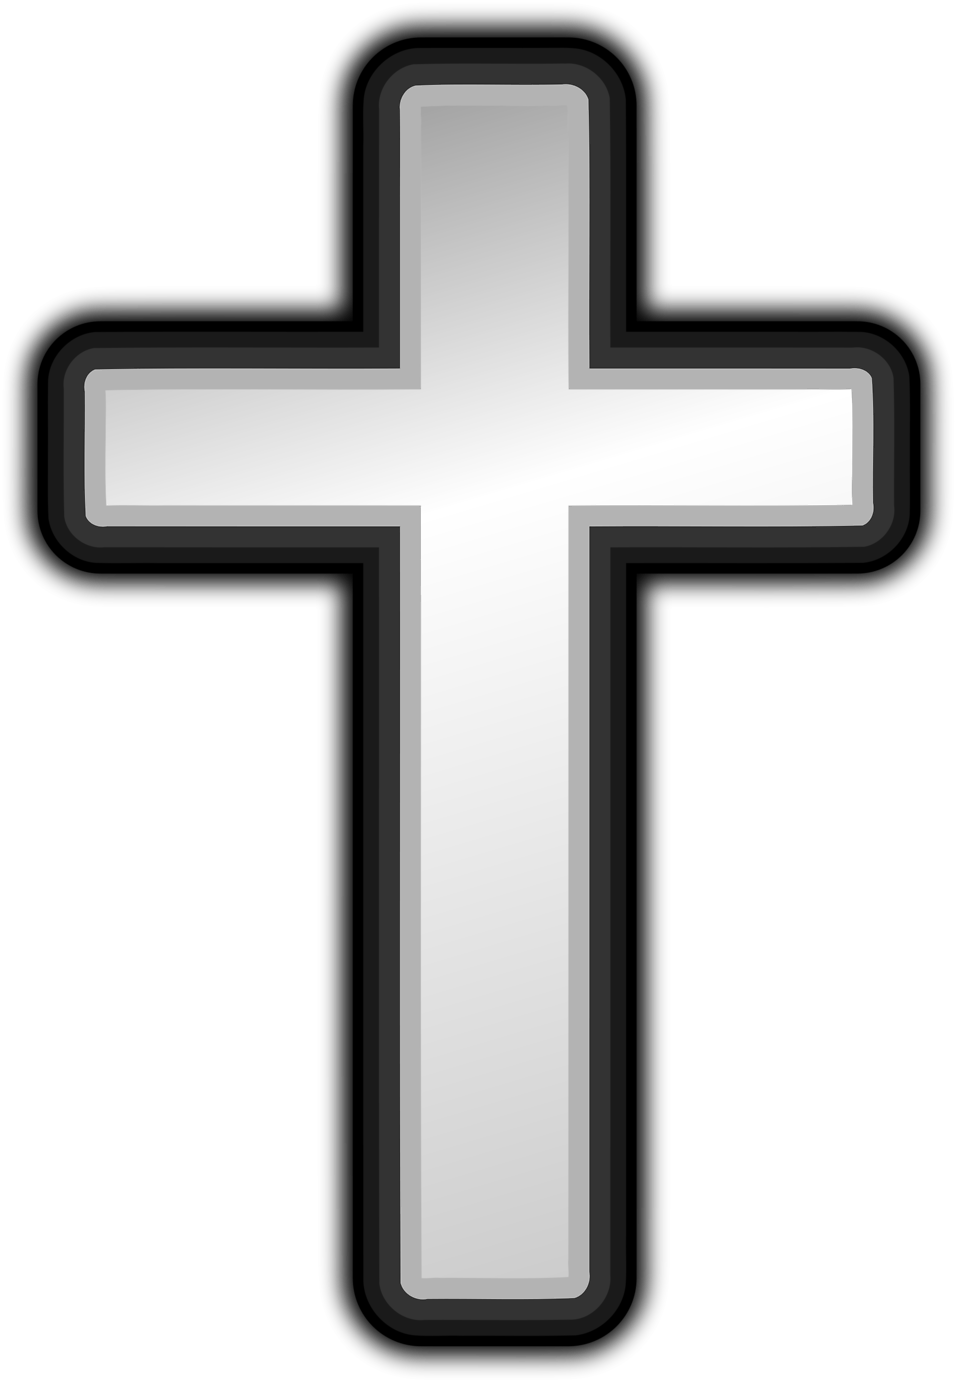 Christianity cross clipart jpg freeuse stock Cross | Free Stock Photo | Illustration of a white cross | # 16542 jpg freeuse stock